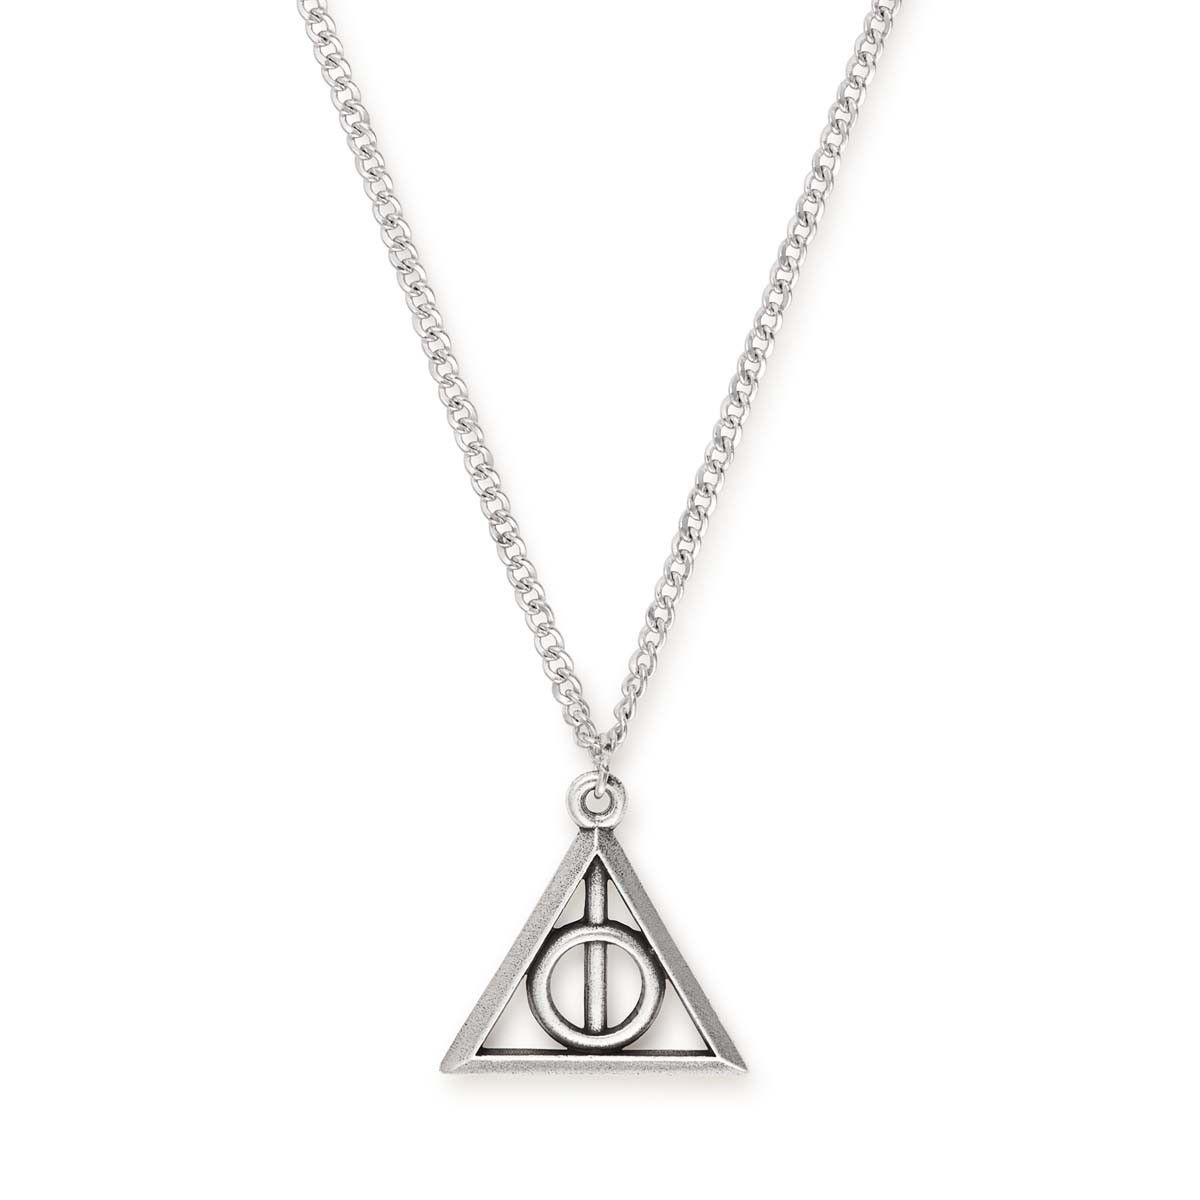 Harry potter deathly hallows necklace deathly hallows symbol this necklace in a silver or gold finish features the deathly hallows symbol from the harry biocorpaavc Images